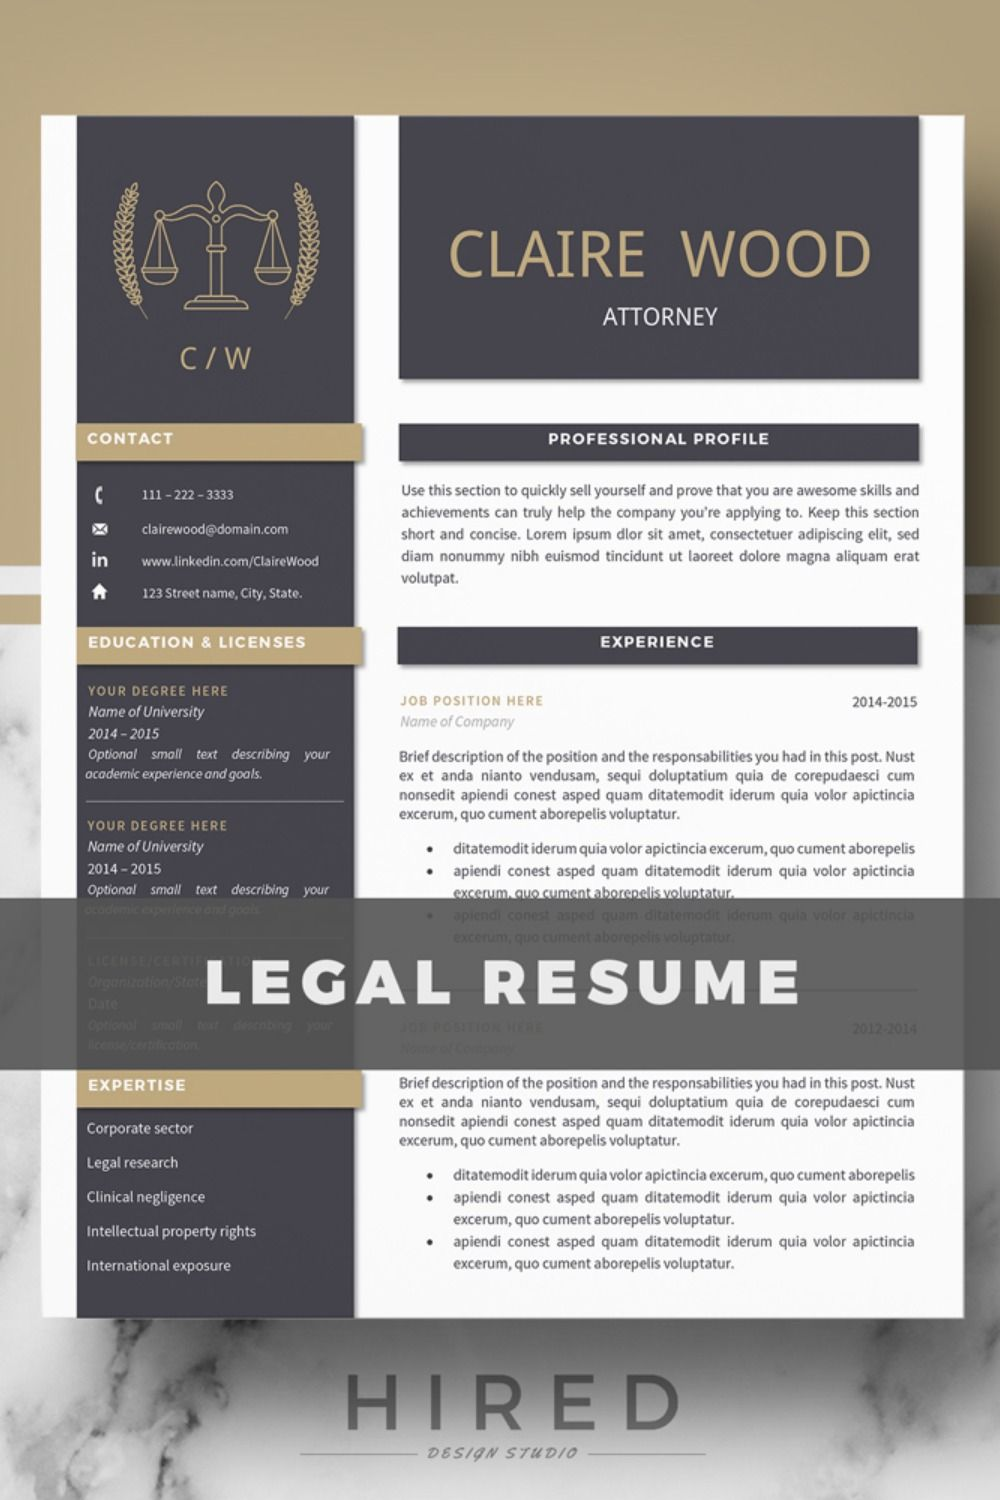 r24 - claire wood